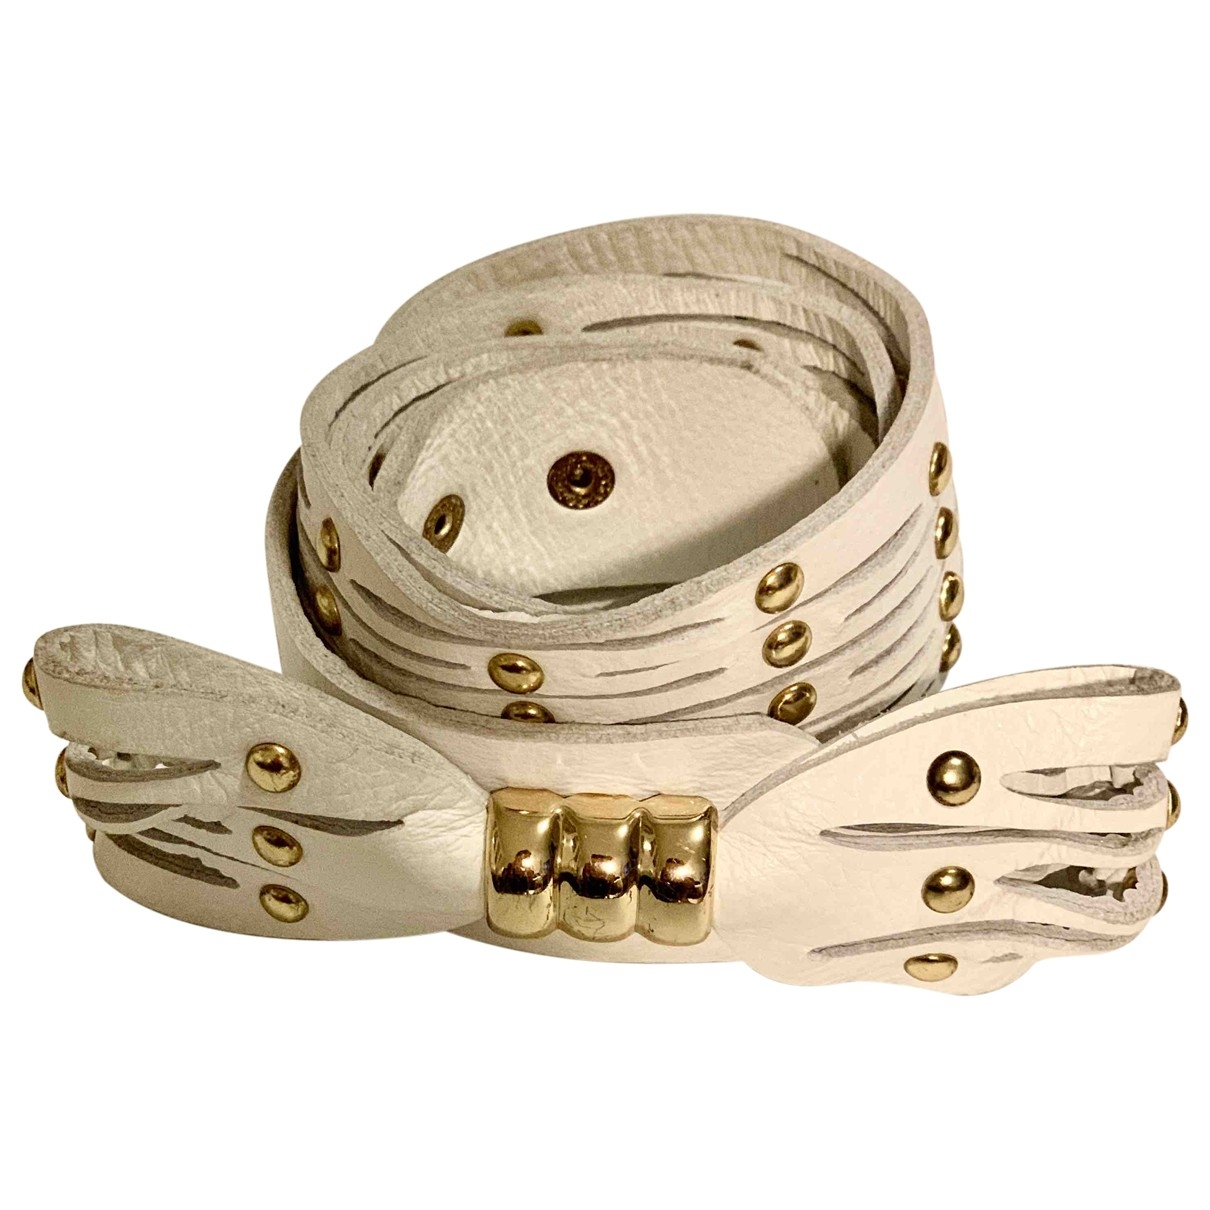 Roberto Cavalli \N White Leather belt for Women 95 cm